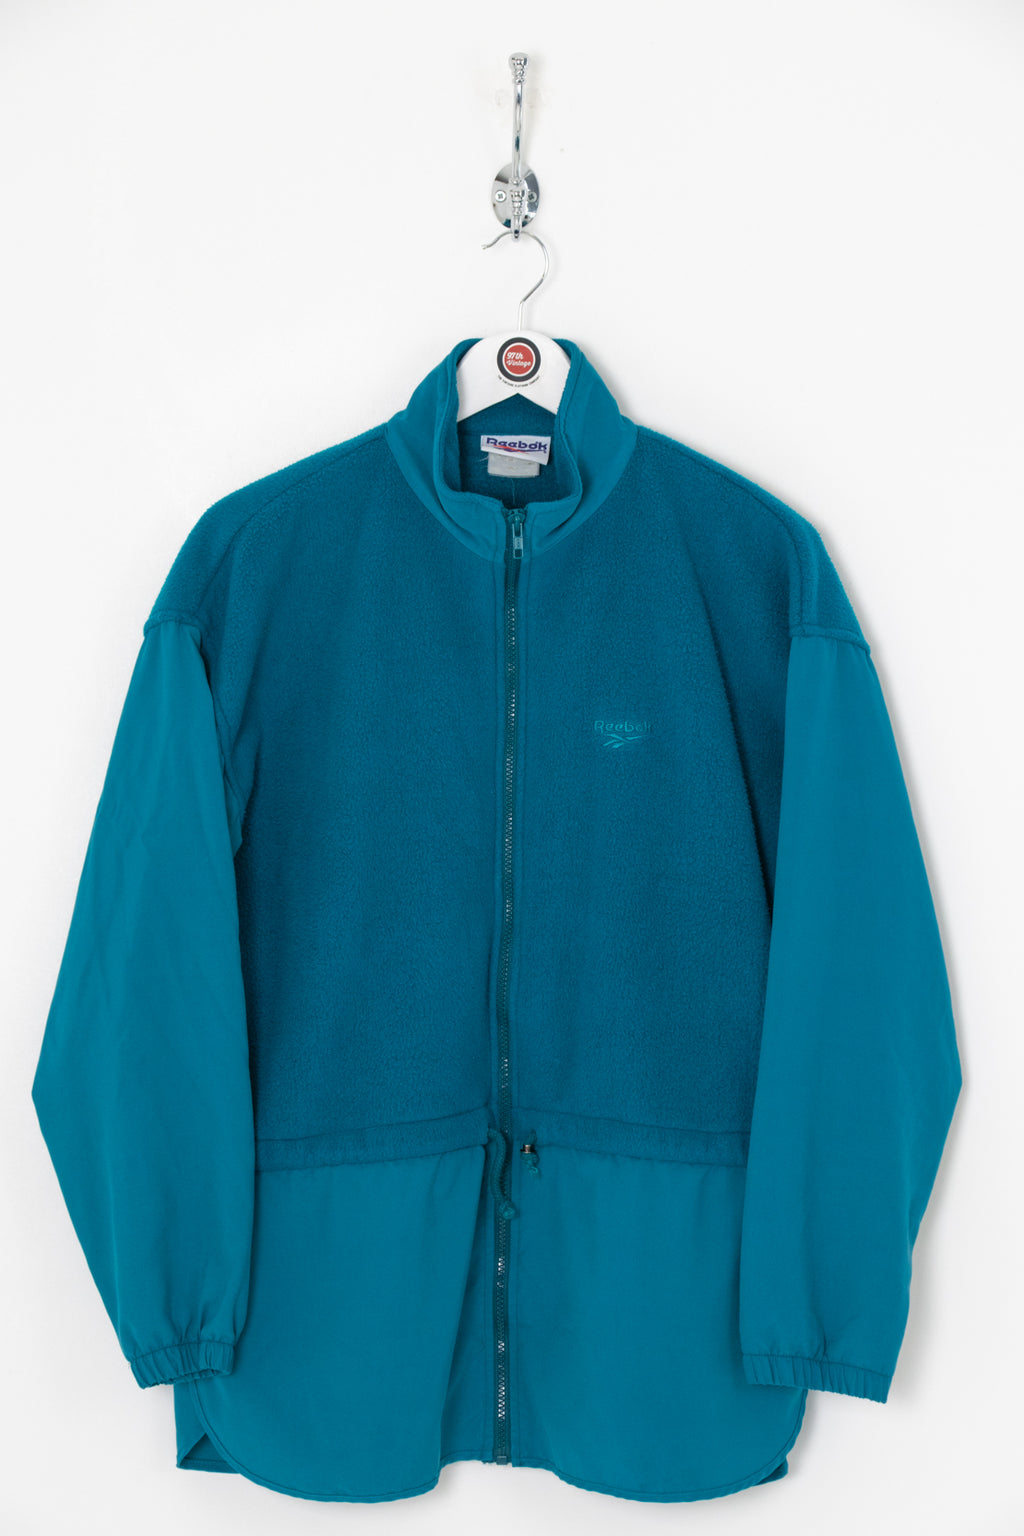 Women's Reebok Fleece (XL)